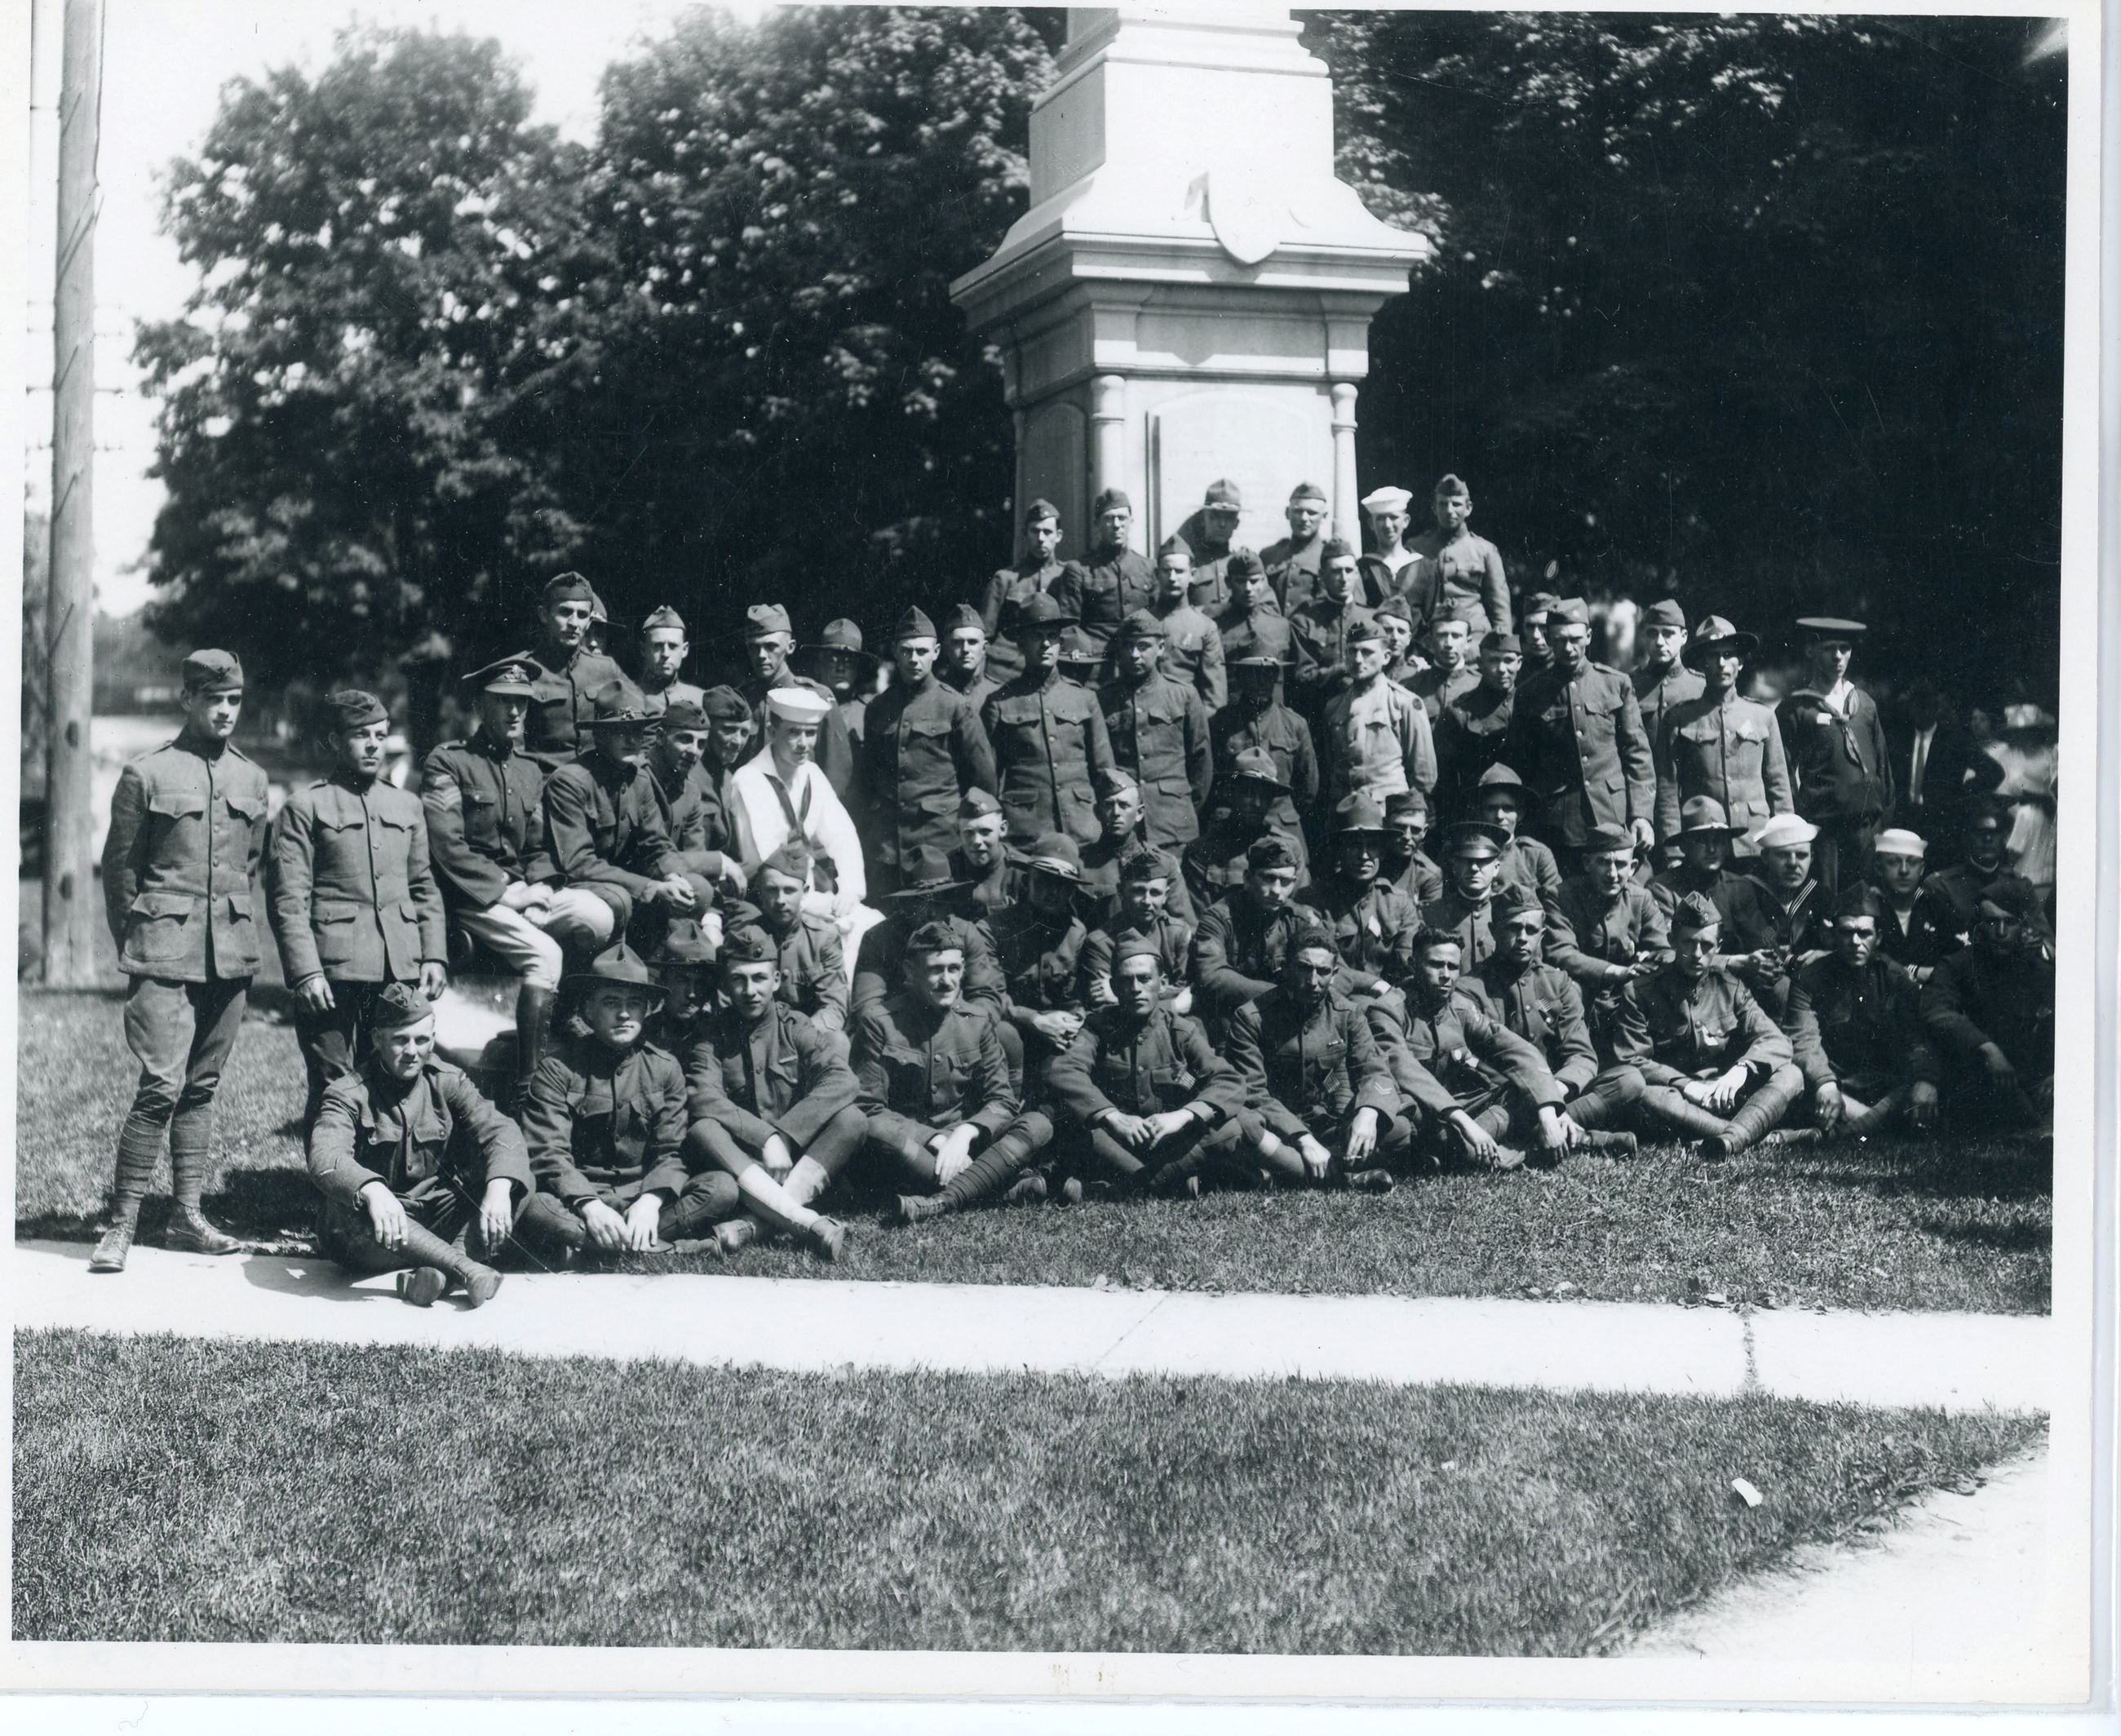 Group portrait of soldiers